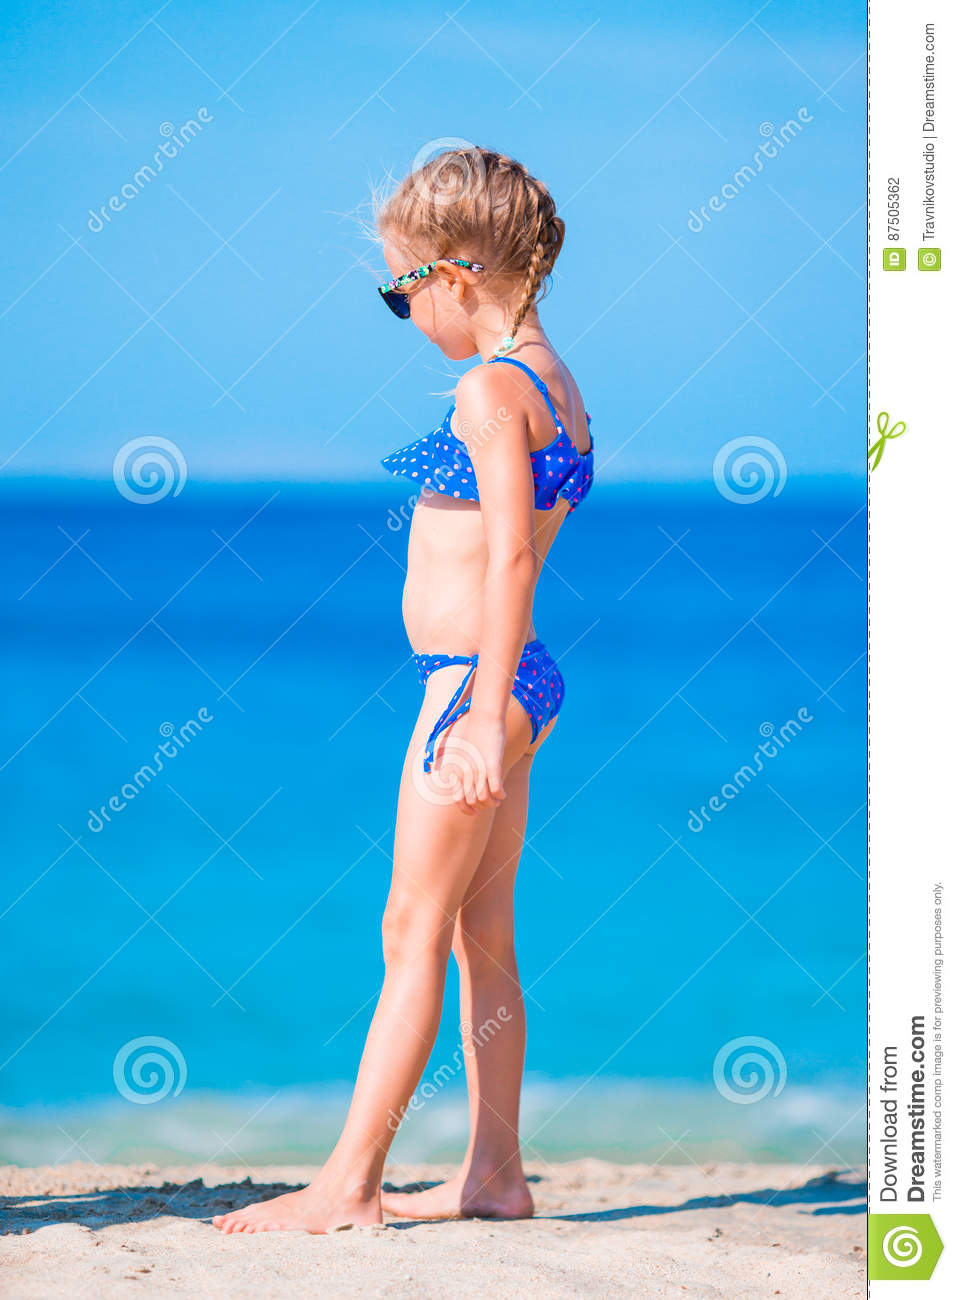 b91d6cf473bfc Adorable Little Girl In Swimsuit On Beach Vacation Stock Photo ...